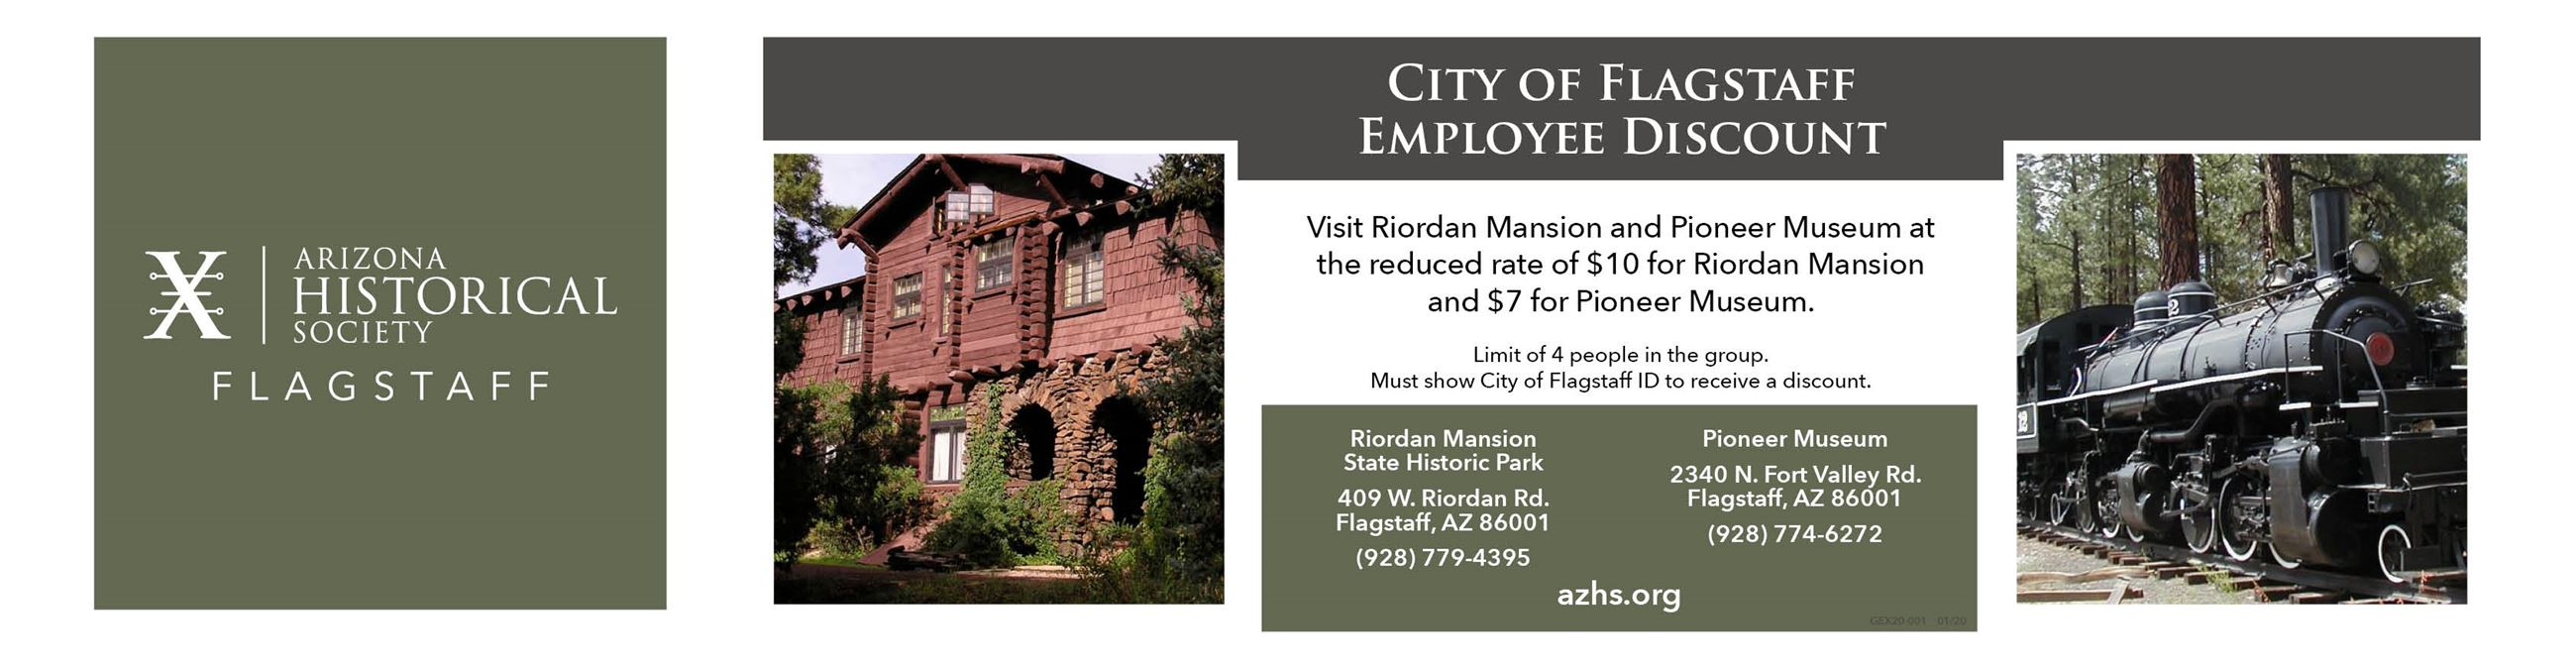 Riordan and Pioneer Museum Flagstaff Employee Discount